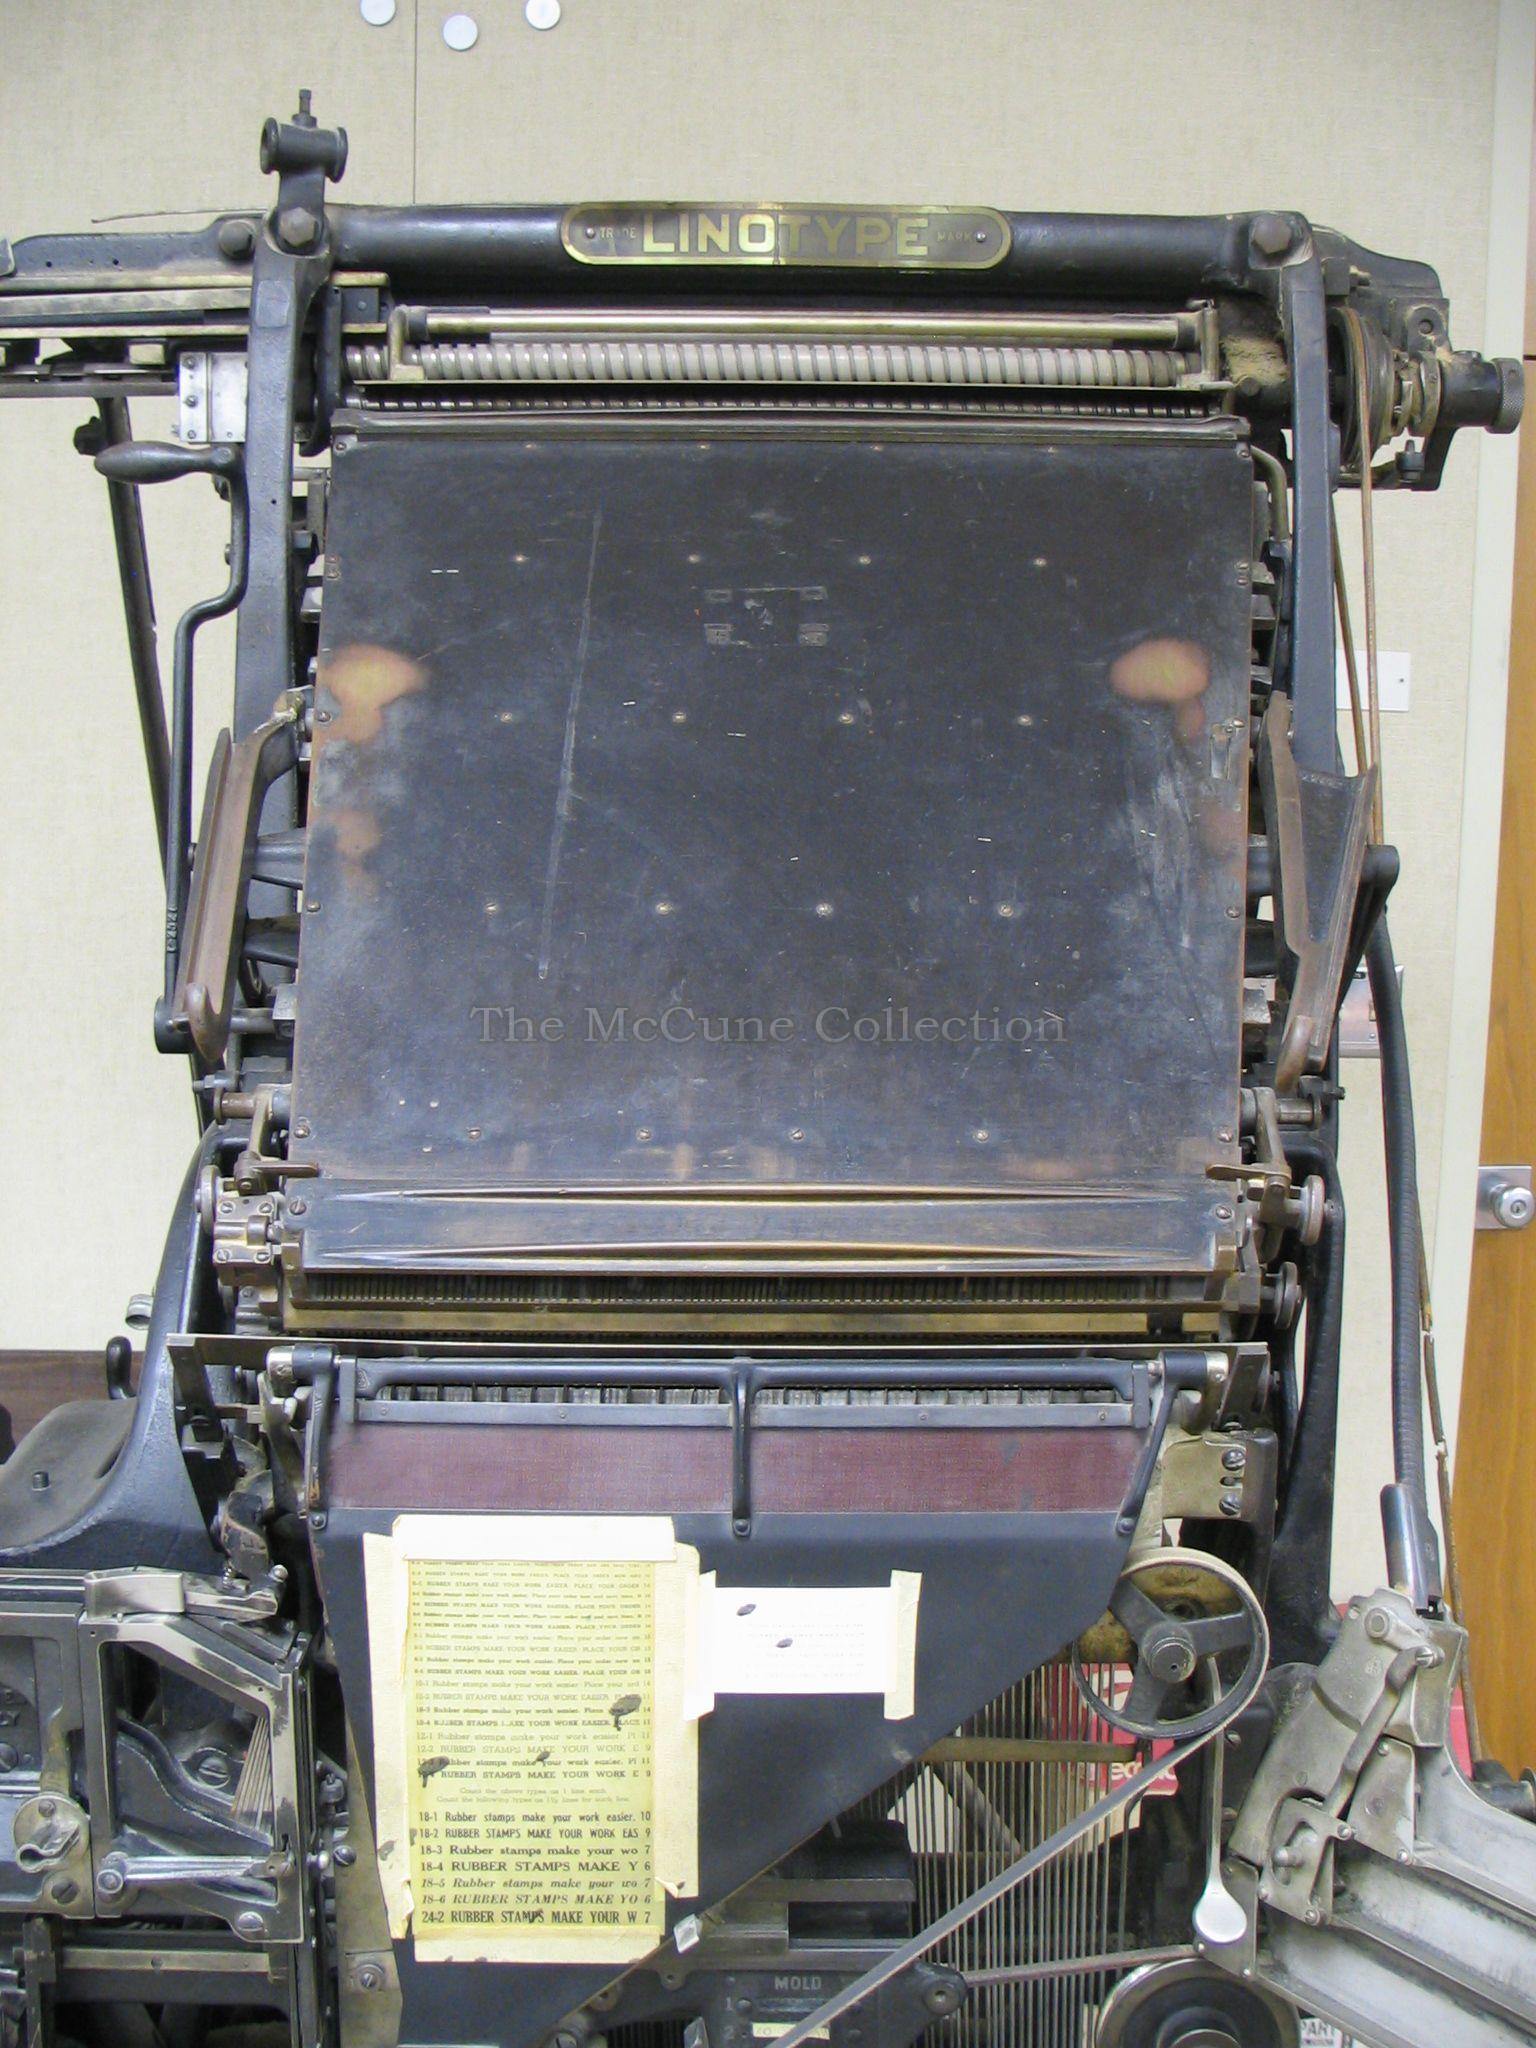 The McCune CollectionLinotype Model 8 • The McCune Collection